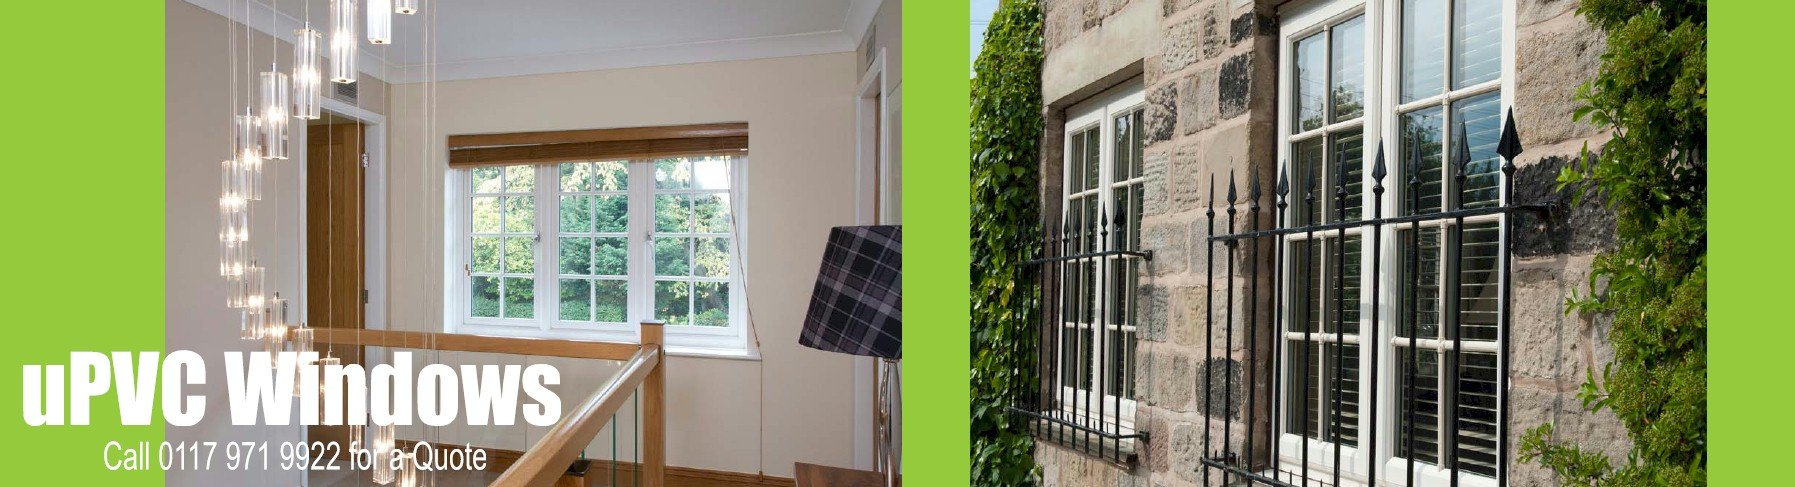 Upvc windows doors made to measure master plastics bristol for Upvc french doors bristol